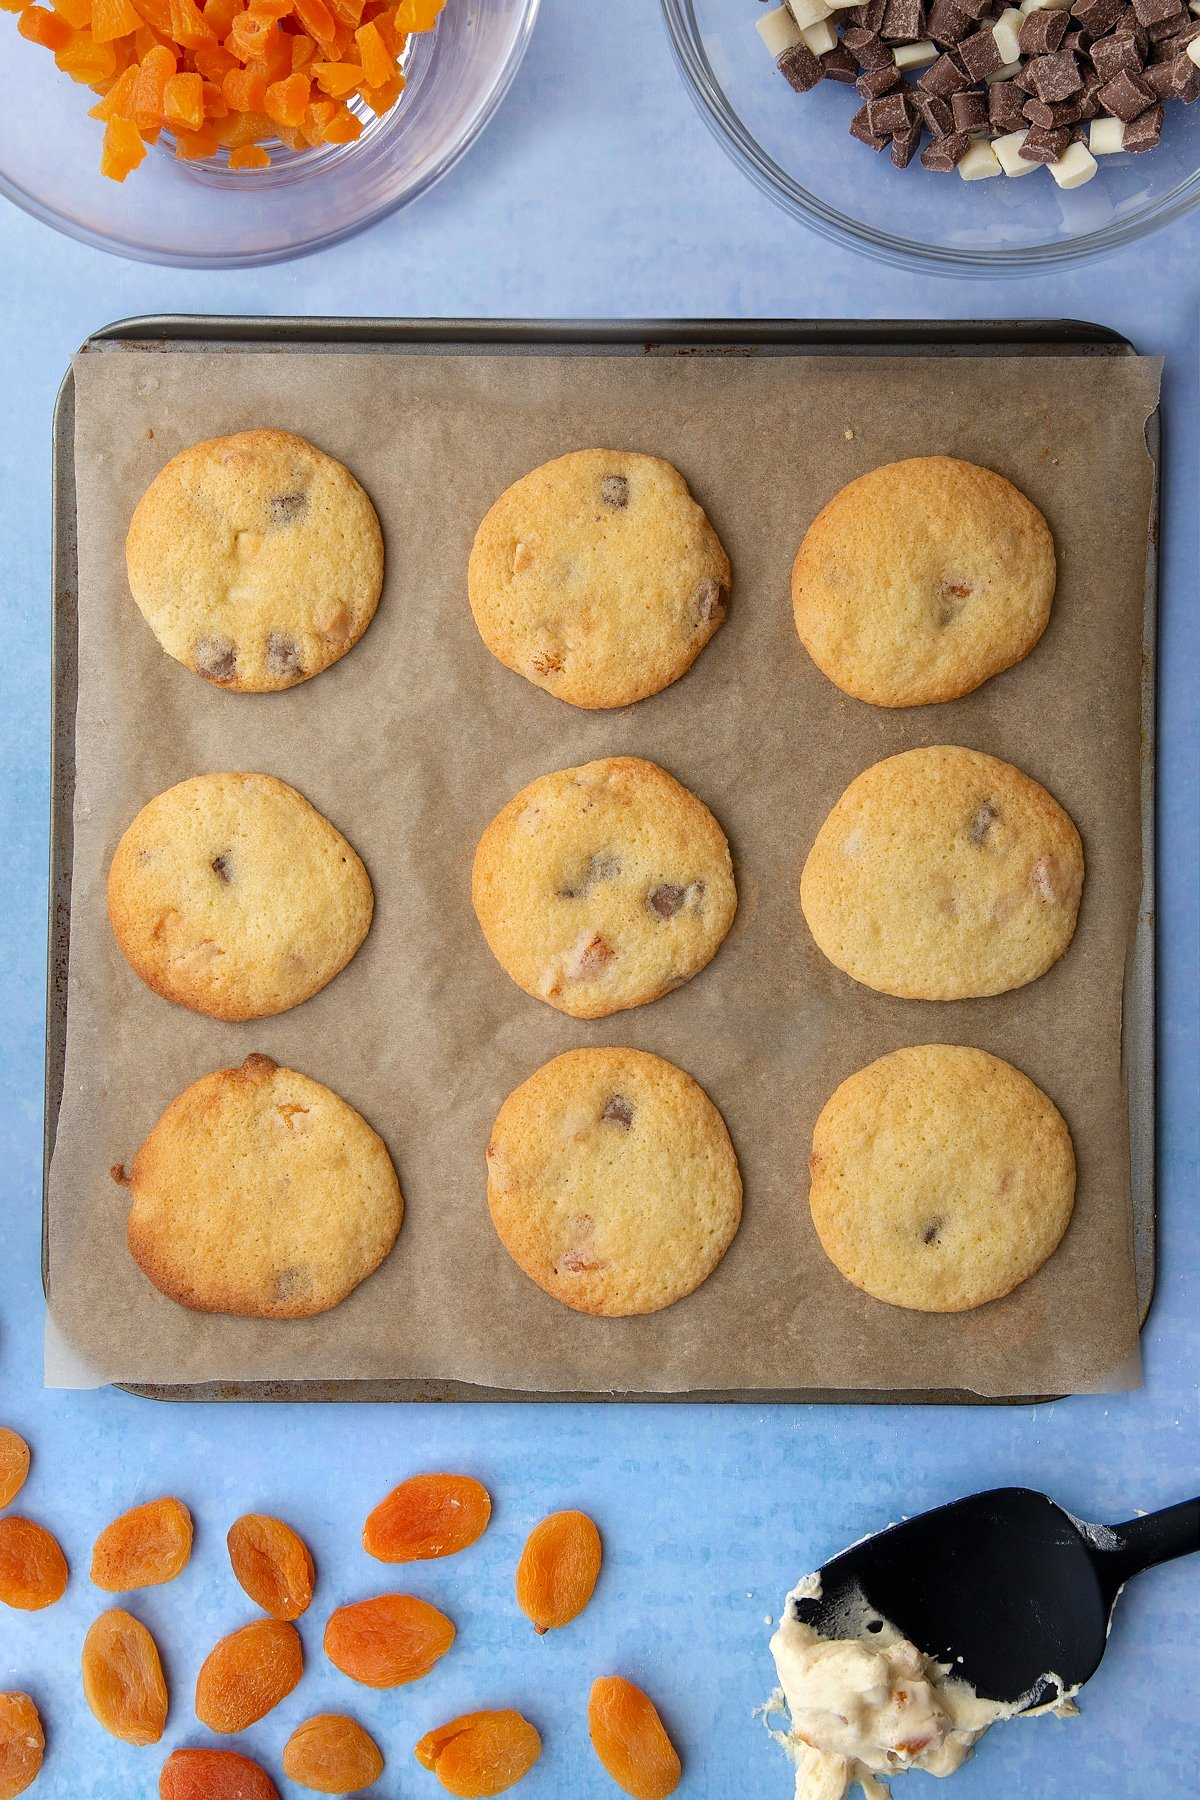 Freshly baked chocolate and apricot cookies on a tray lined with baking paper. Ingredients to make apricot chocolate chip cookies surround the tray.